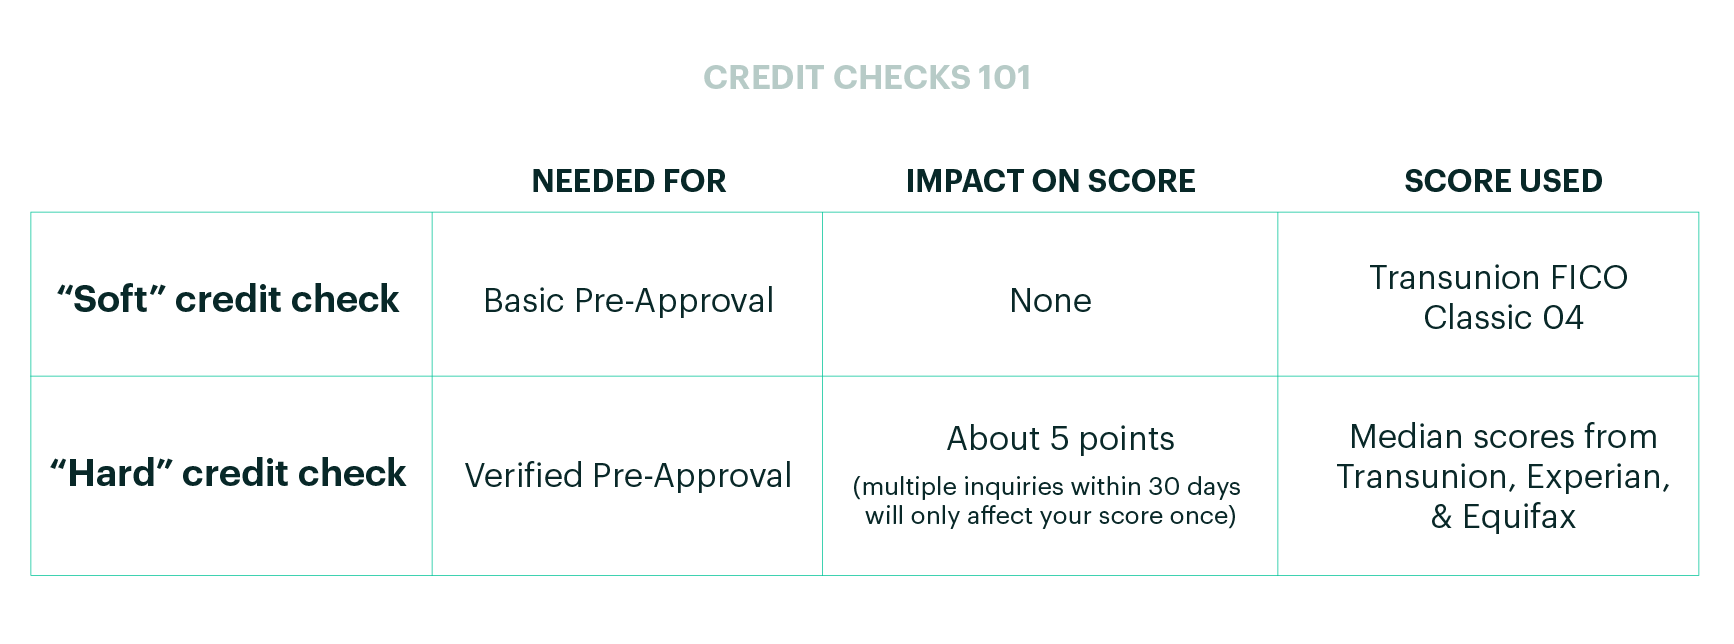 Credit Checks 101 Table. X-Axis: Needed For, Impact on Score, Score Used, Y-Axis: Soft and Hard Credit Check On